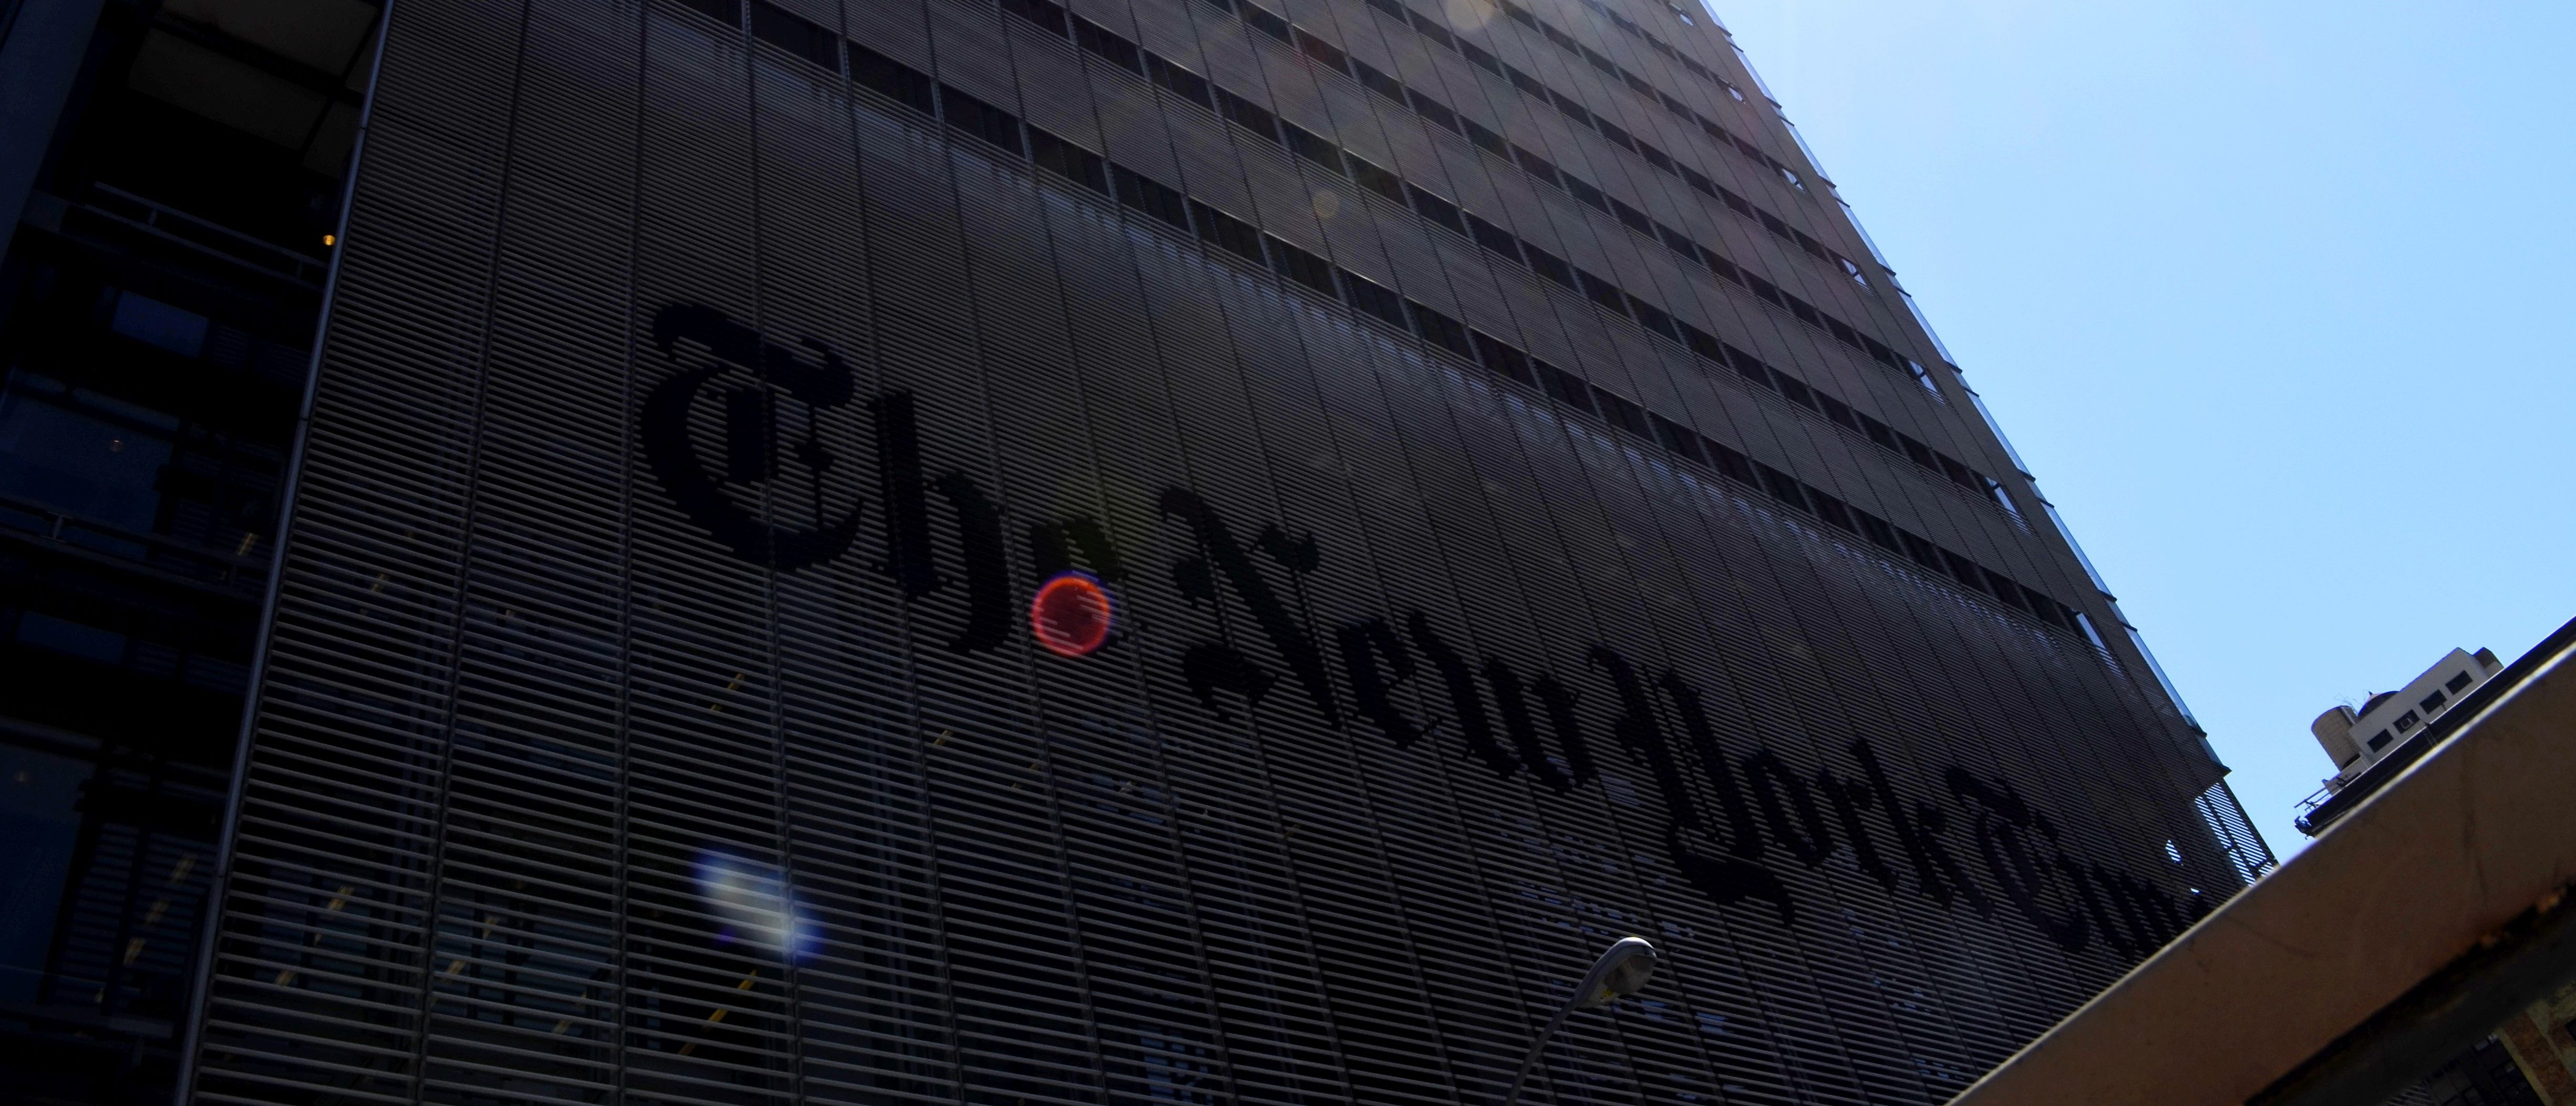 the new york times new york city, sehenswürdigkeiten manhattan, top 10 sehenswürdigkeiten, travelguide new york, travelblog, travel, lifestyleblog, blogger © ceyourgoals 2016